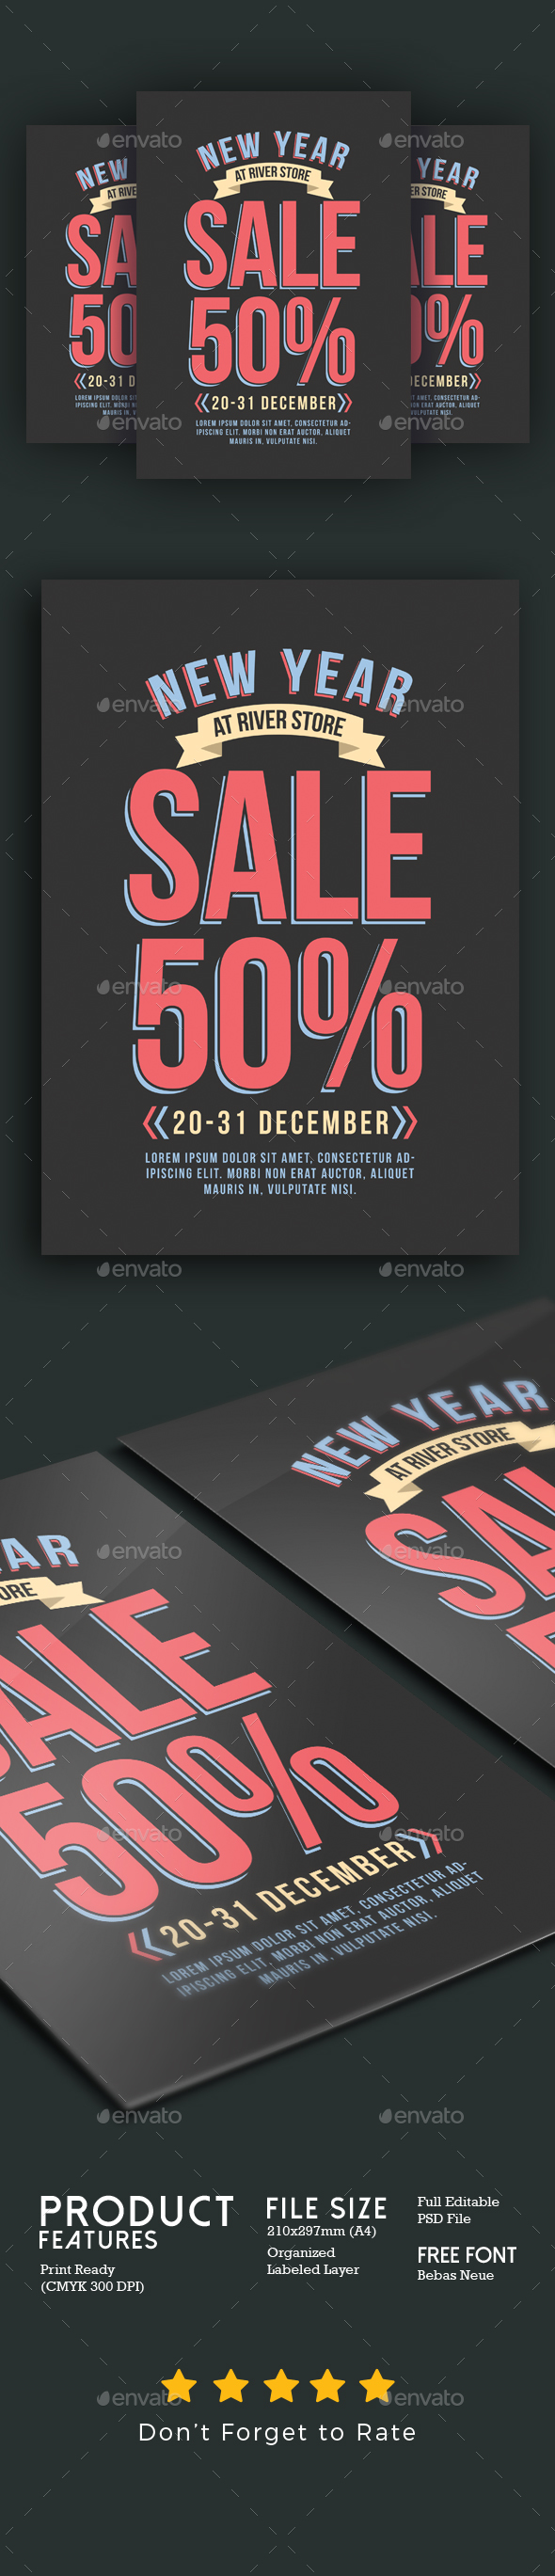 New Year Sale Flyer - Flyers Print Templates